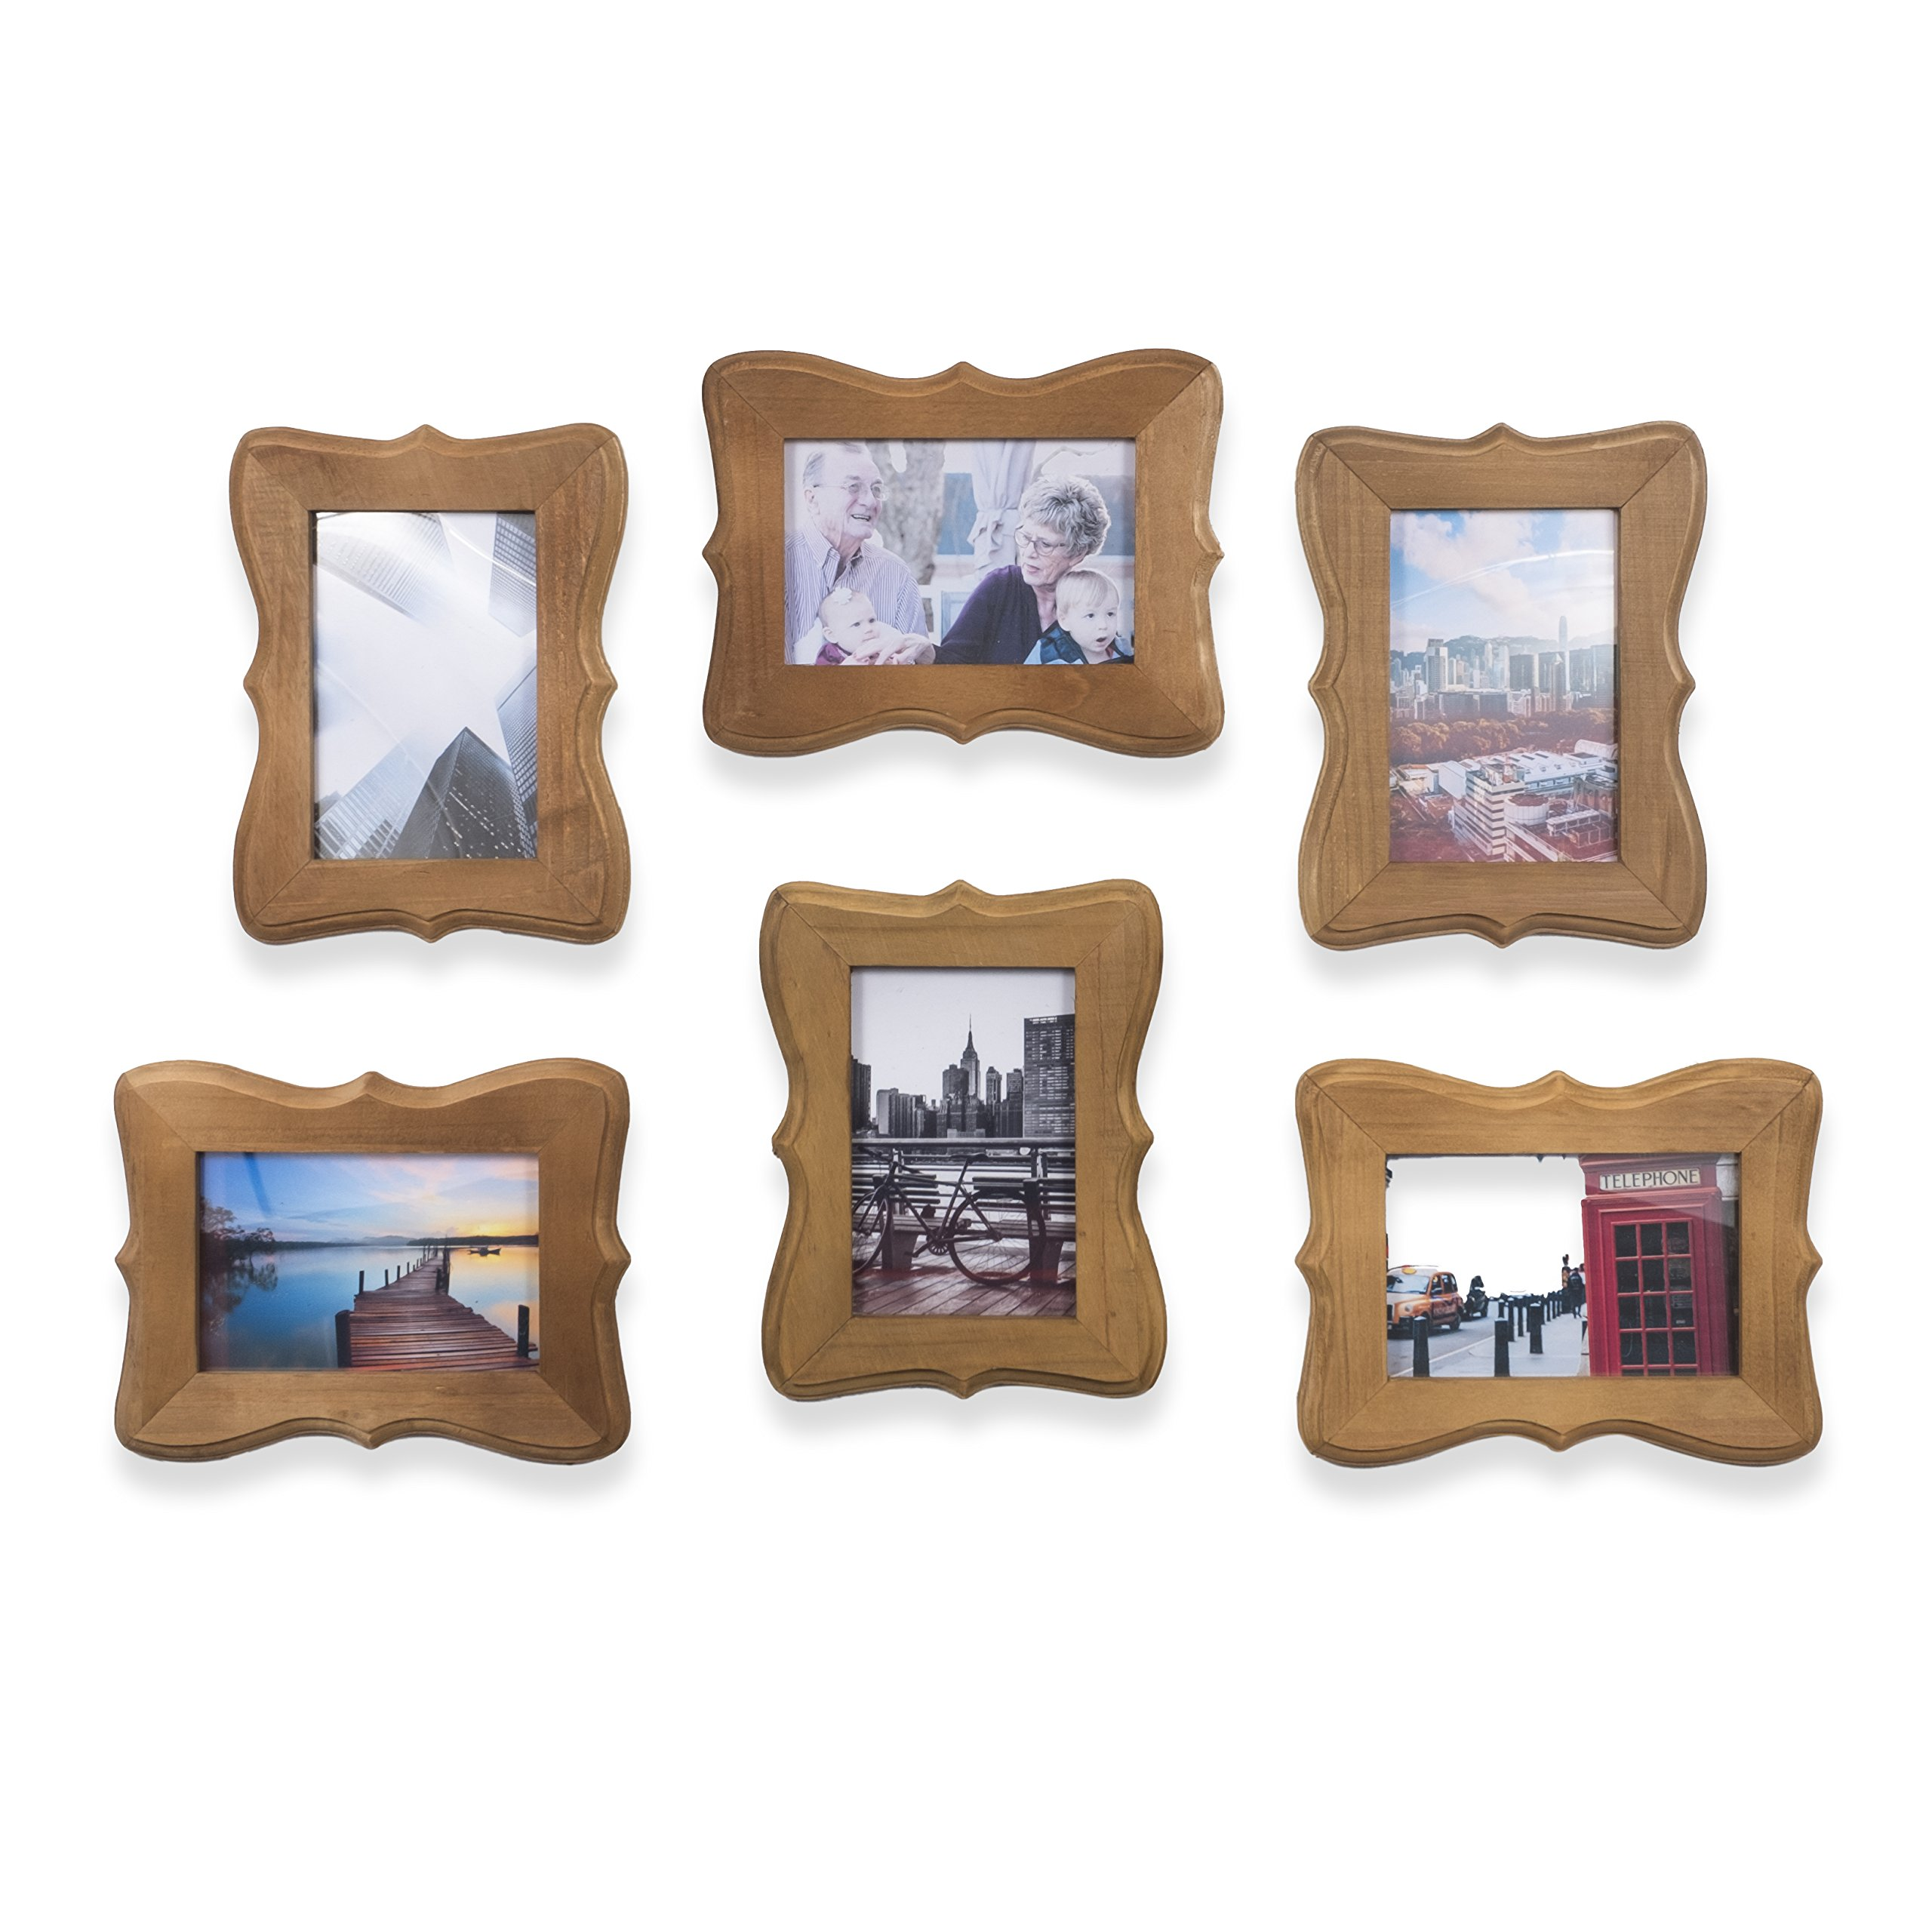 Wallniture Victorian Home or Office Decor Wood Picture Frames for 4x6 Inch Photos Walnut (6)